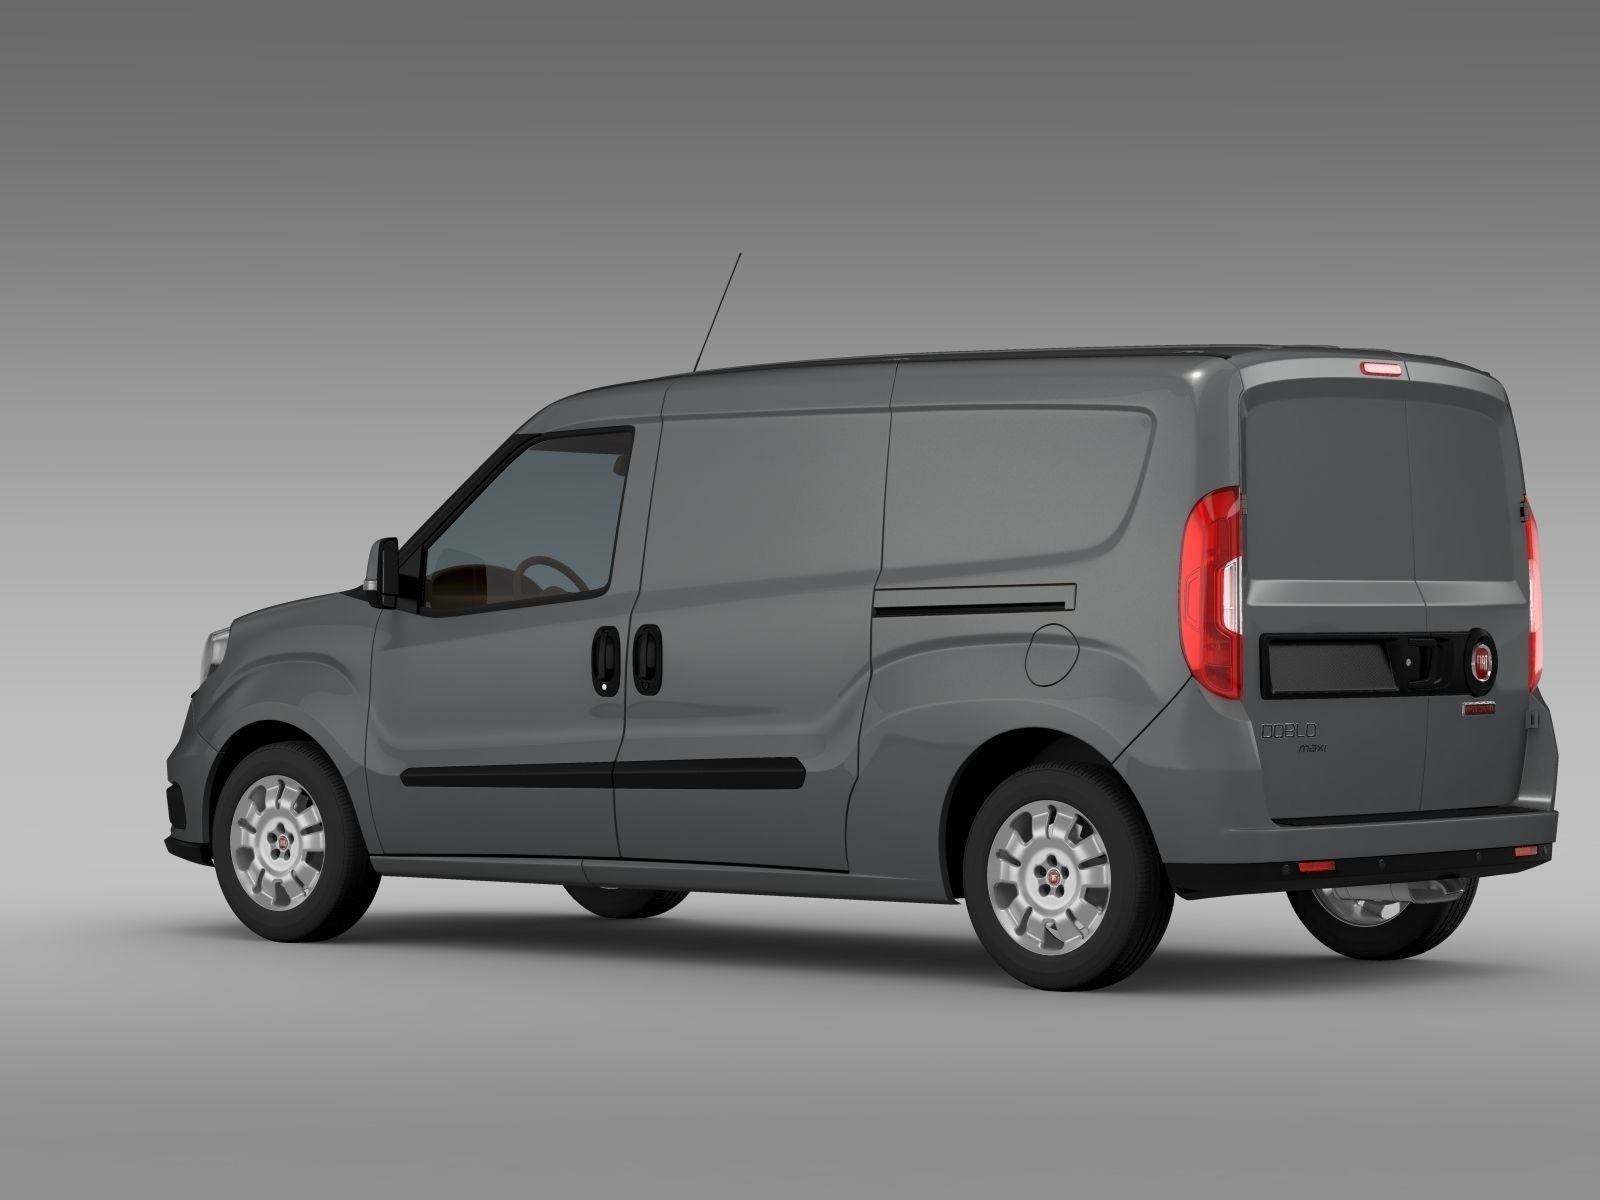 fiat doblo cargo maxi 263 2015 3d model max obj 3ds. Black Bedroom Furniture Sets. Home Design Ideas